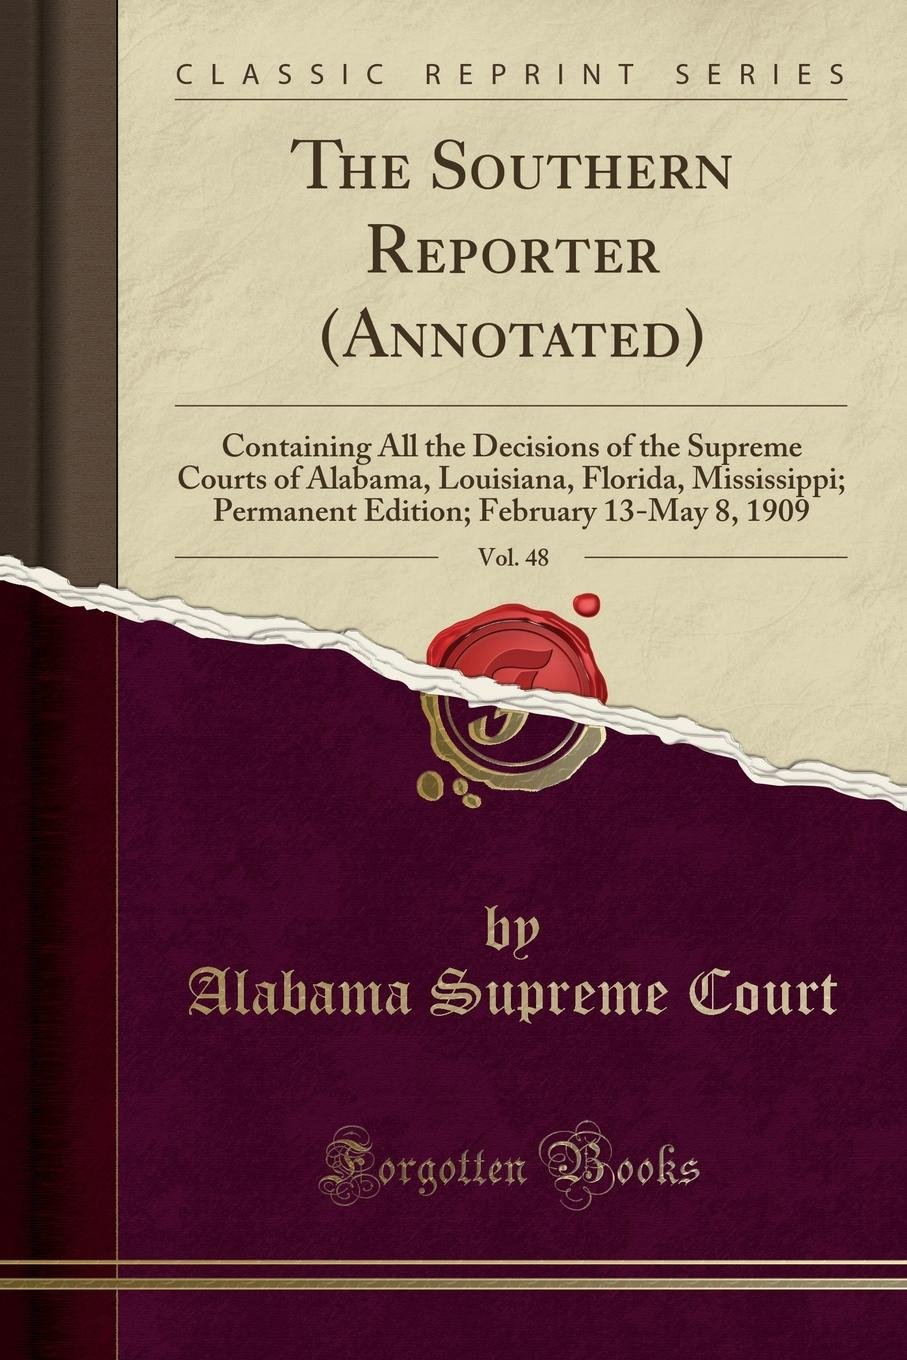 The Southern Reporter (Annotated), Vol. 48: Containing All the Decisions of the Supreme Courts of Alabama, Louisiana, Florida, Mississippi; Permanent Edition; February 13-May 8, 1909 (Classic Reprint) pdf